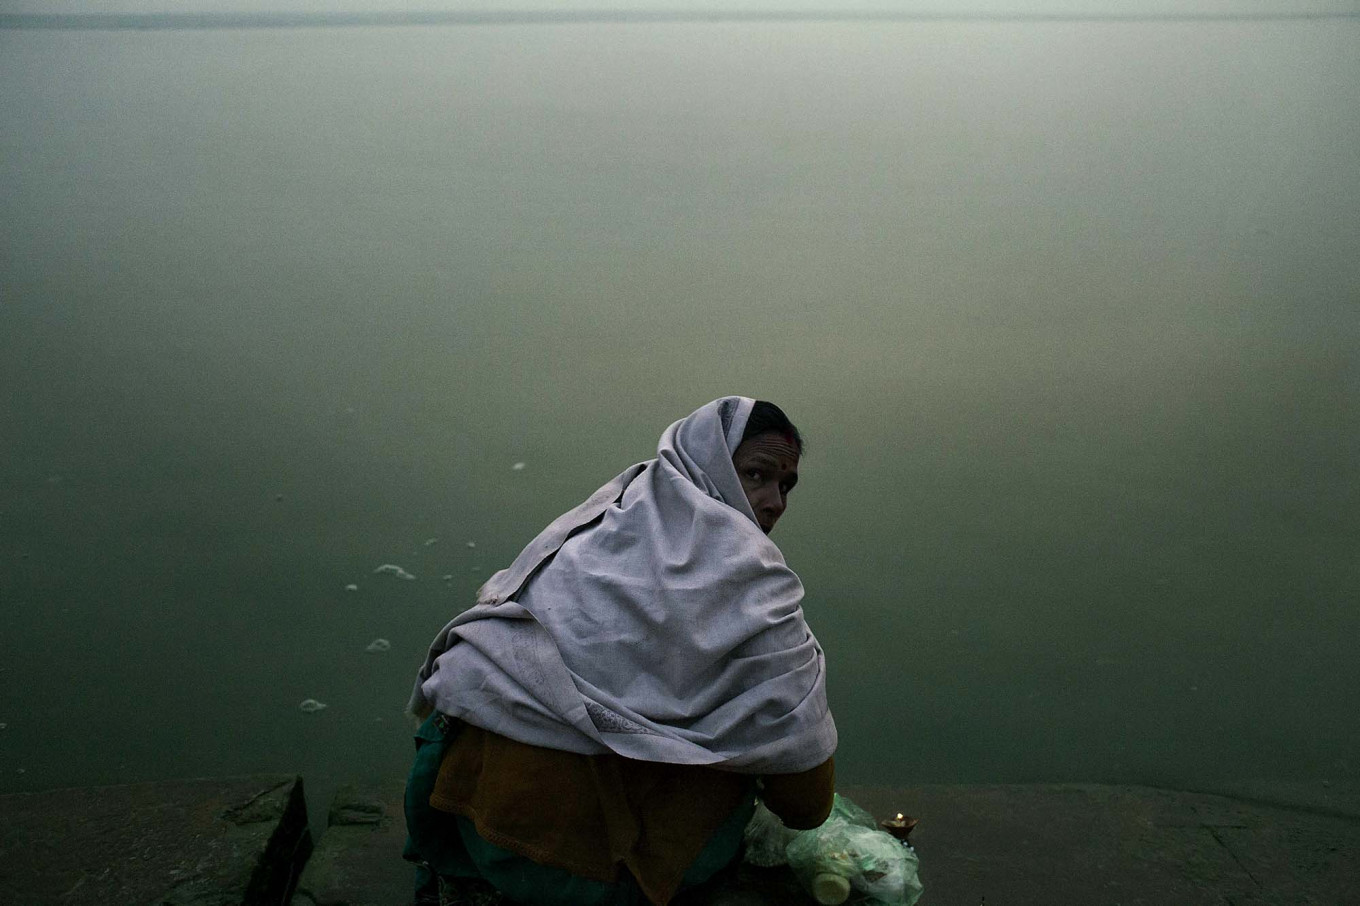 The river contributes significantly to the lives of the surrounding communities. JP/Irene Barlian